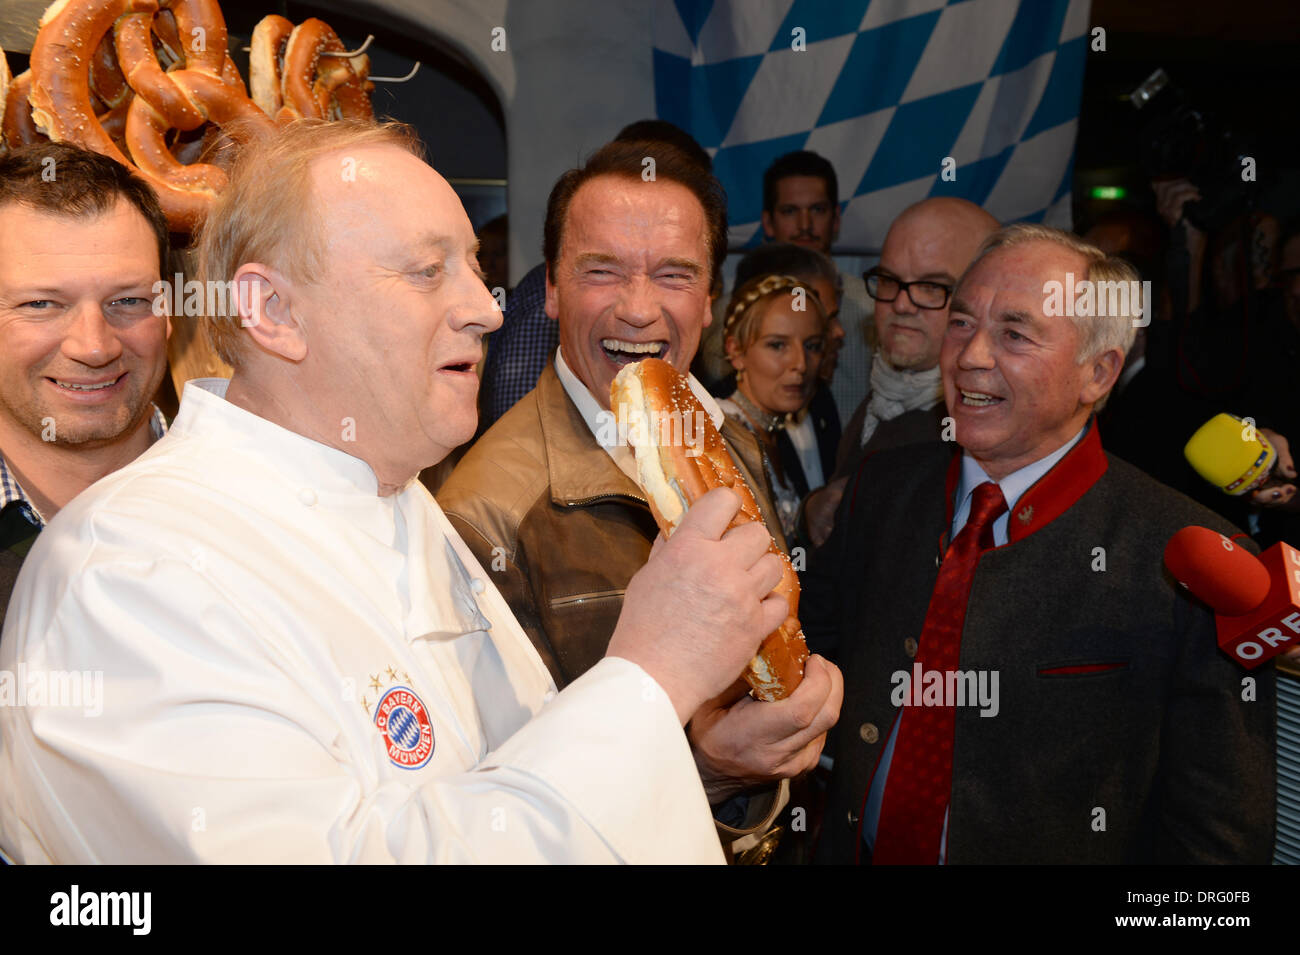 Kitzbuehel, Austria. 24th Jan, 2014. Former US governor and Hollywood actor Arnold Schwarzenegger (C) feeds chef Alfons Schuhbeck (L) at the Bavarian veal sausage party in the Stanglwirt bar near Kitzbuehel, Austria, 24 January 2014. Many celebrities came for the annual Austrian downhill ski race Hahnenkamm race in worldfamous skiing location. Photo: Felix Hoerhager/dpa/Alamy Live News - Stock Image